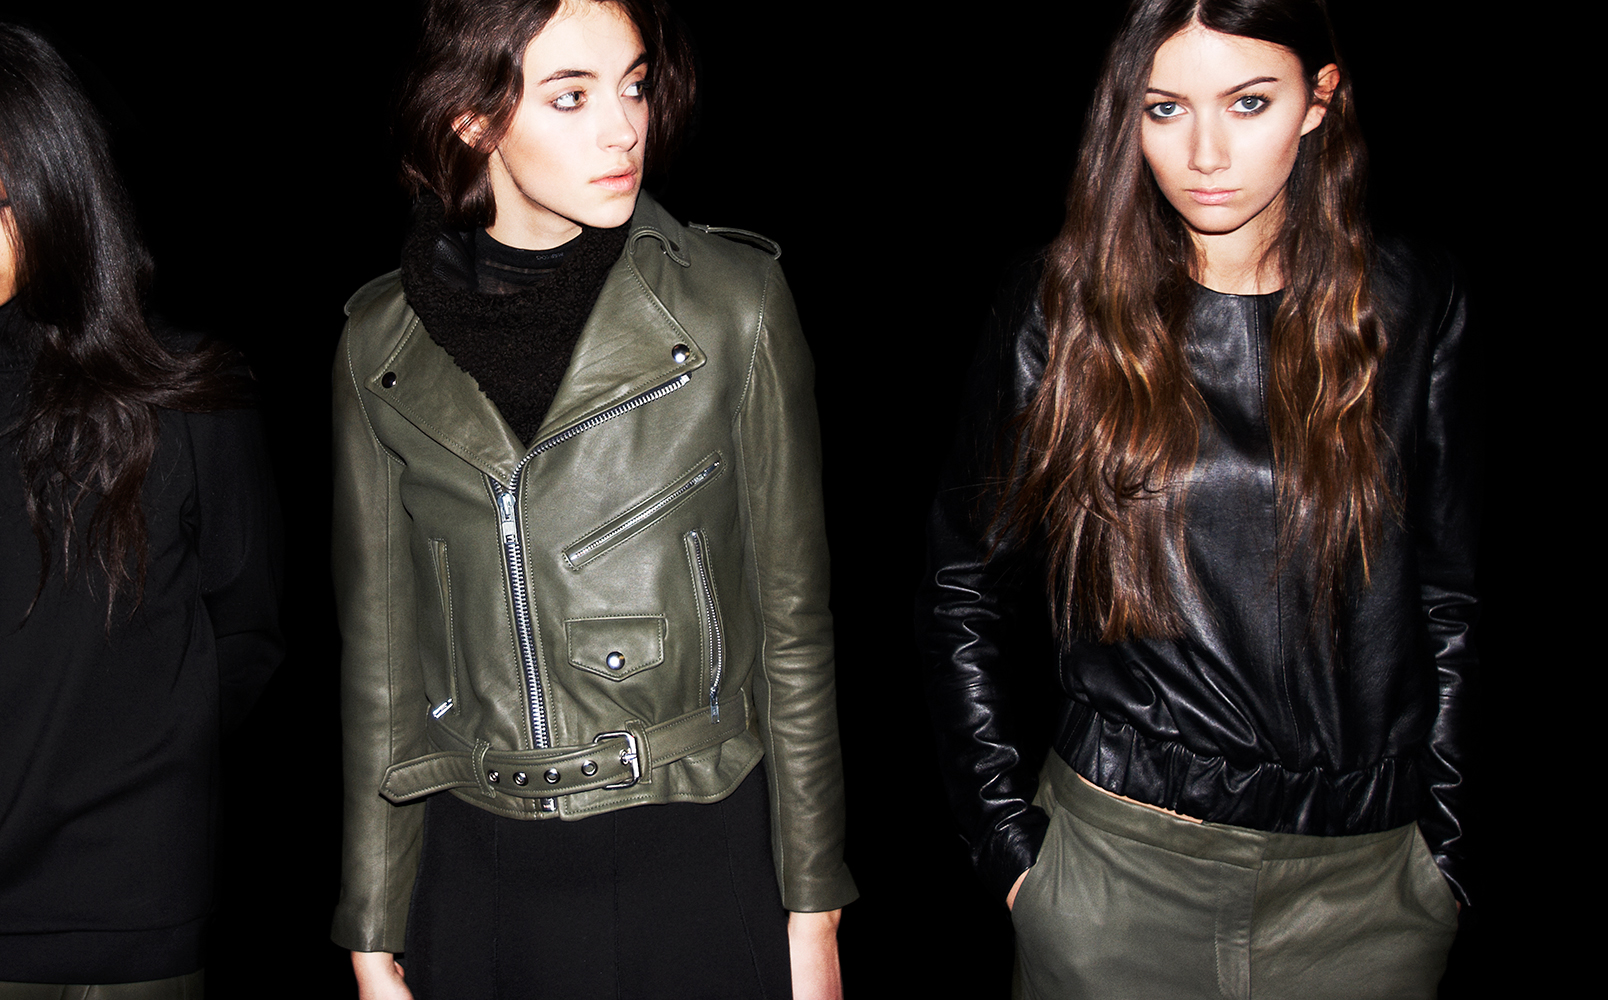 Some pulled images from Markoo Studios fall/winter leather campaign.